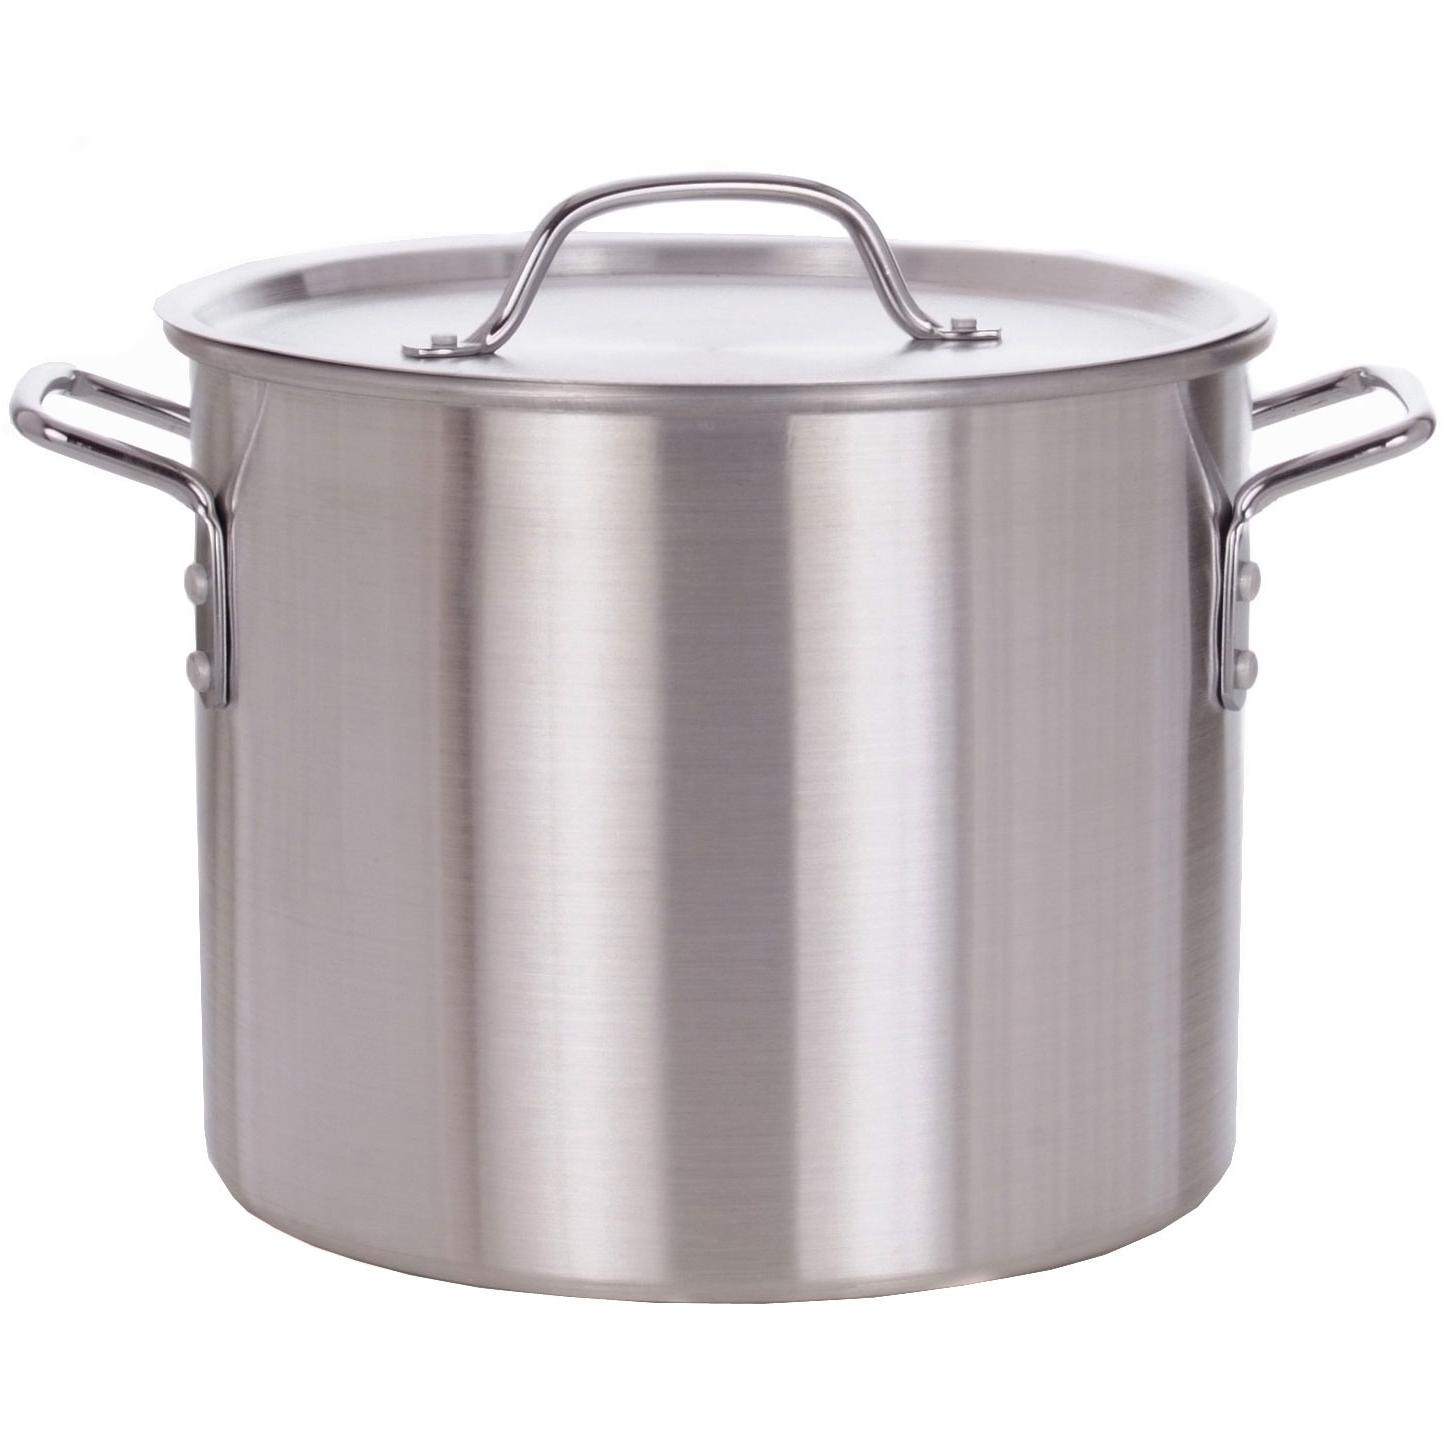 Cajun Cookware Pots 16 Quart Aluminum Stock Pot